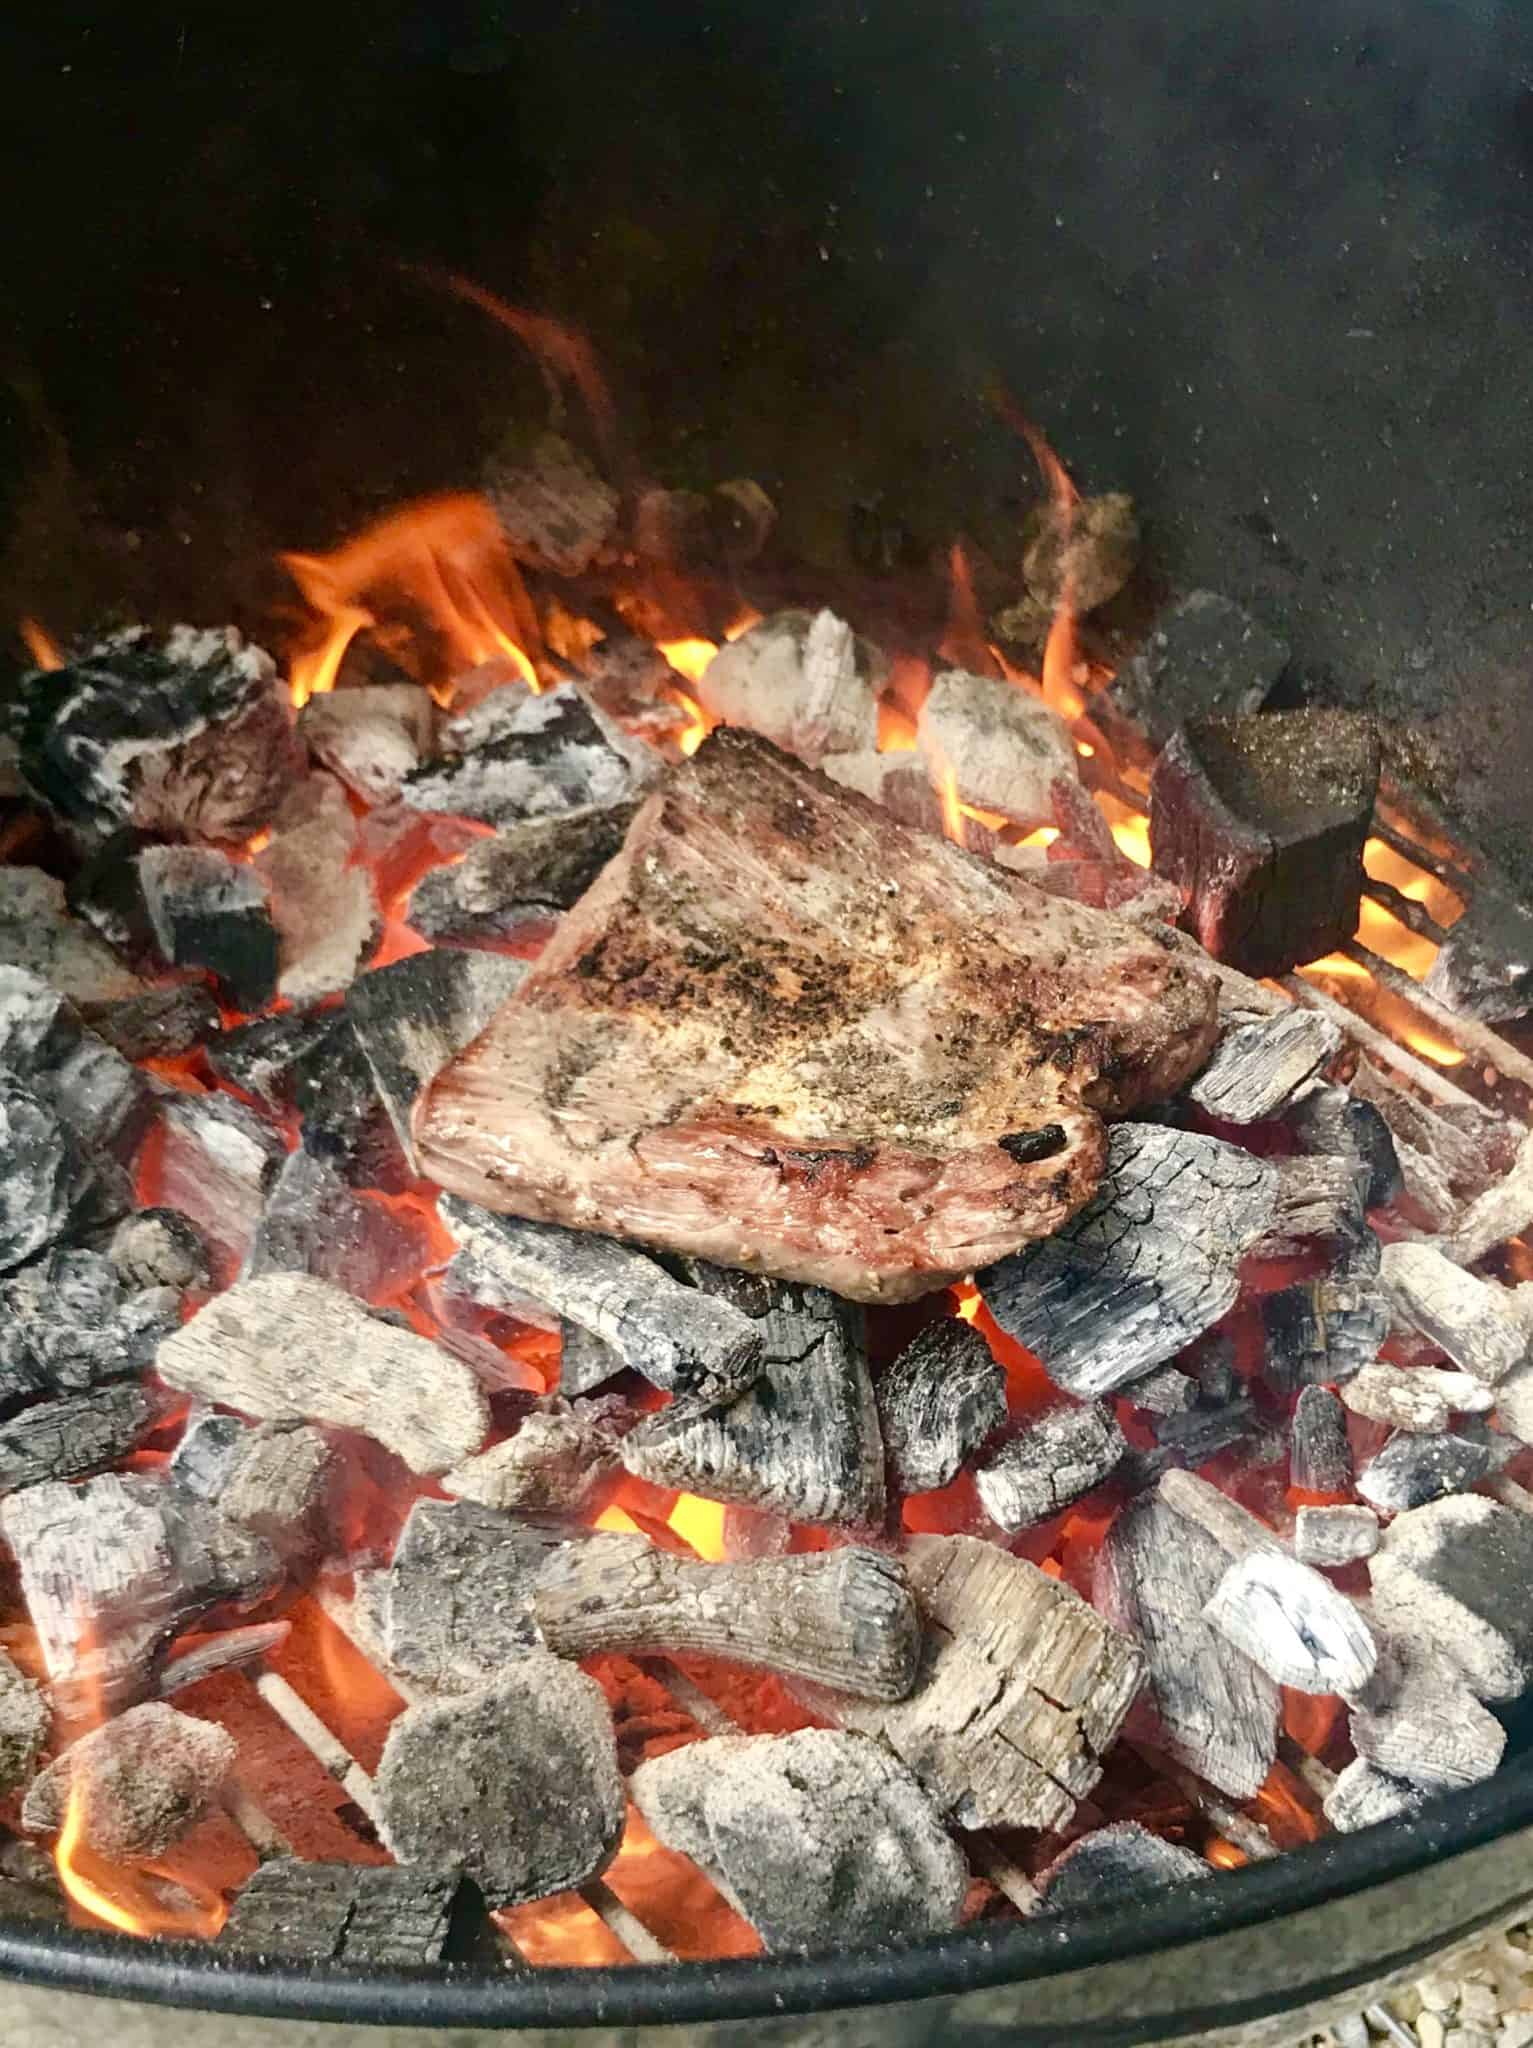 Steak being cooked directly on top of coals